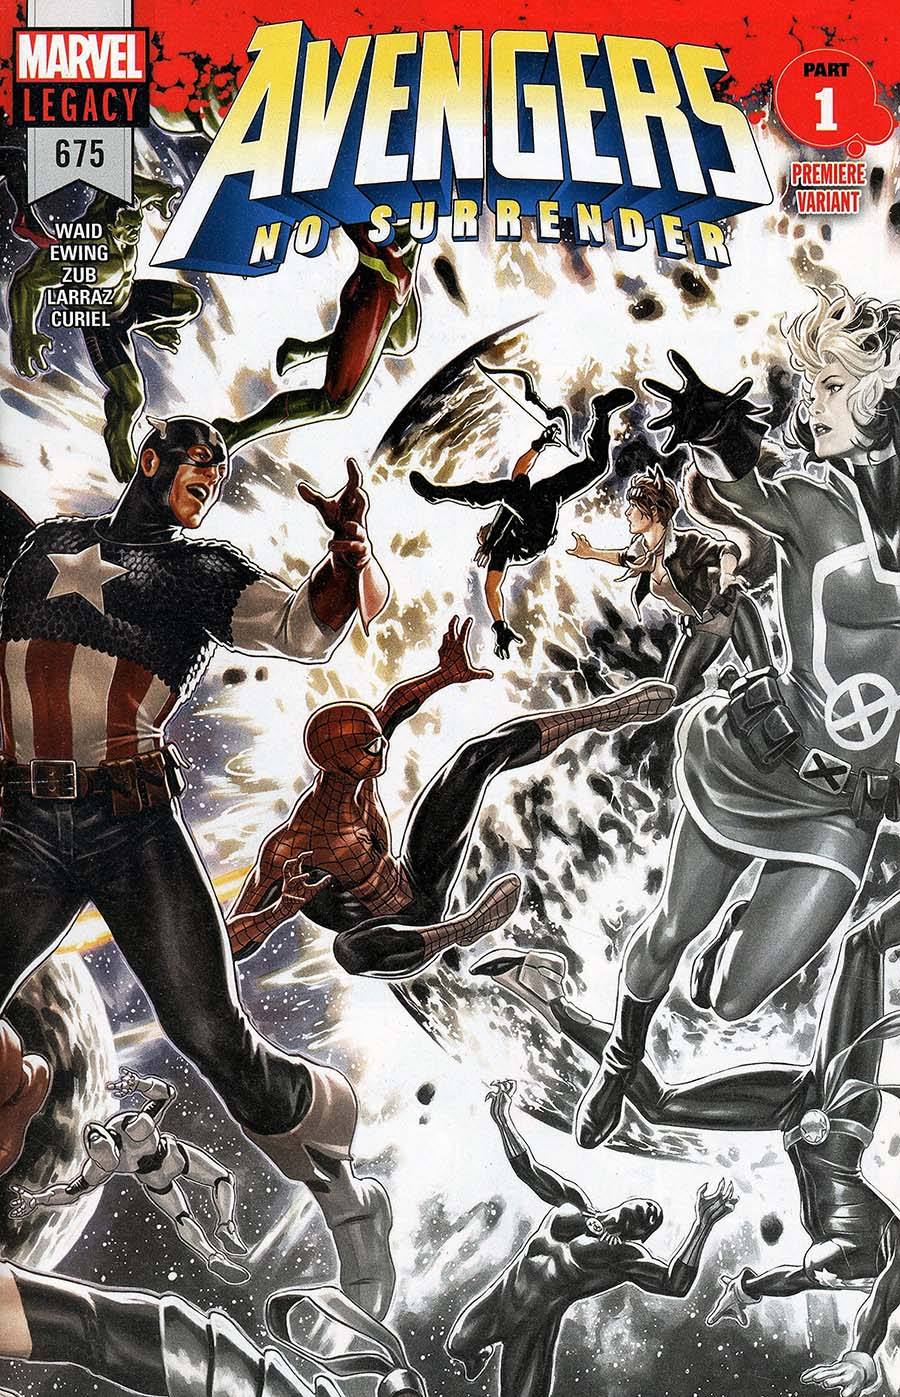 Avengers Vol 6 #675 Cover I Incentive Premiere Variant Cover (No Surrender Part 1)(Marvel Legacy Tie-In)